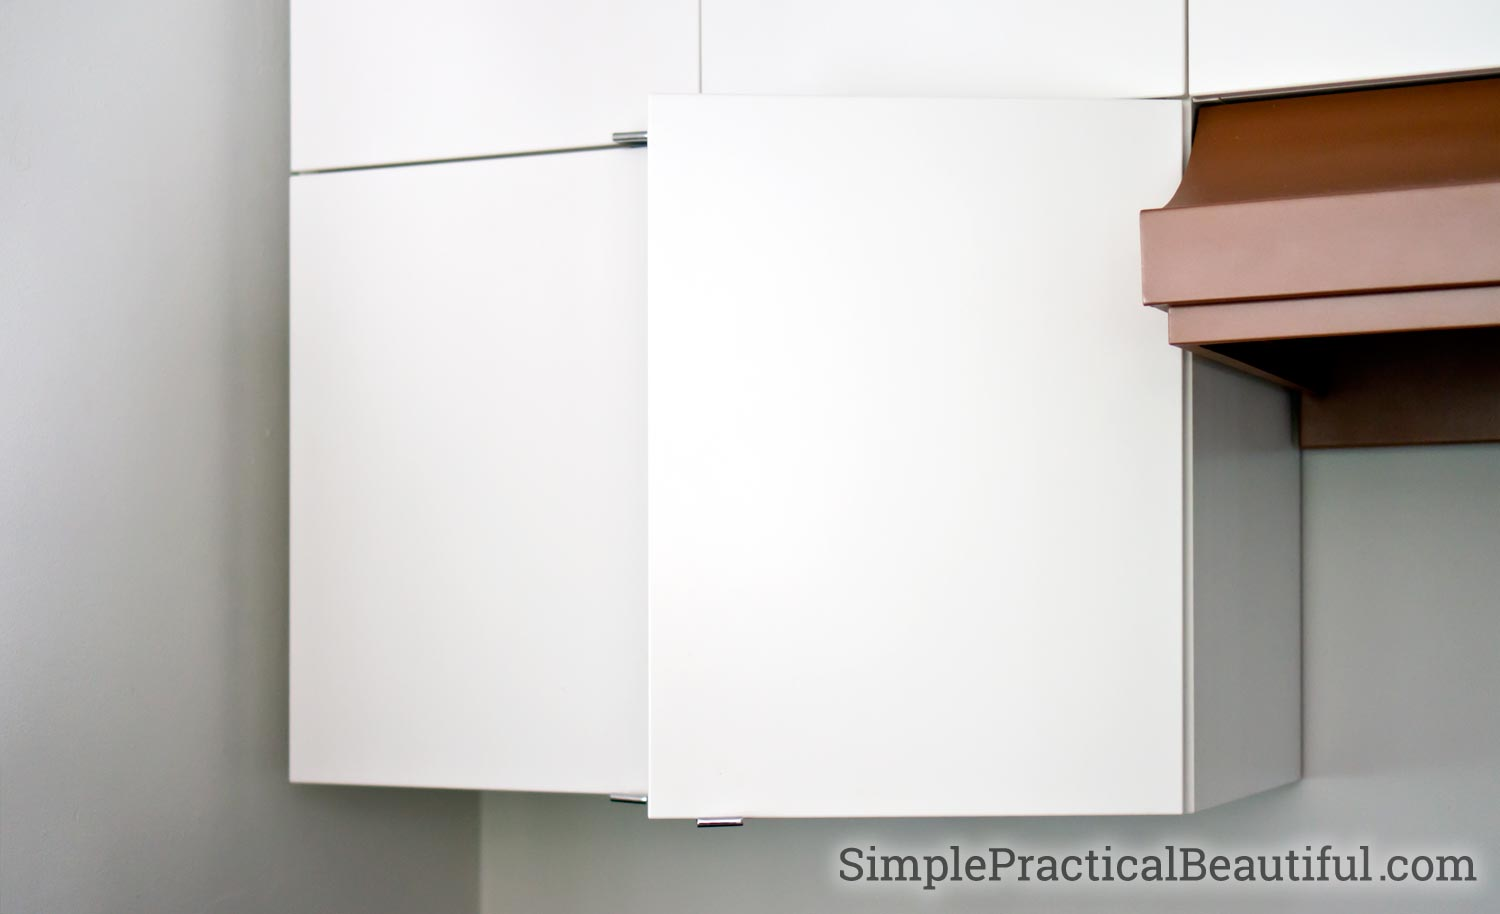 DIY installation of an IKEA Sektion cabinet with Utrusta hinges and soft-close